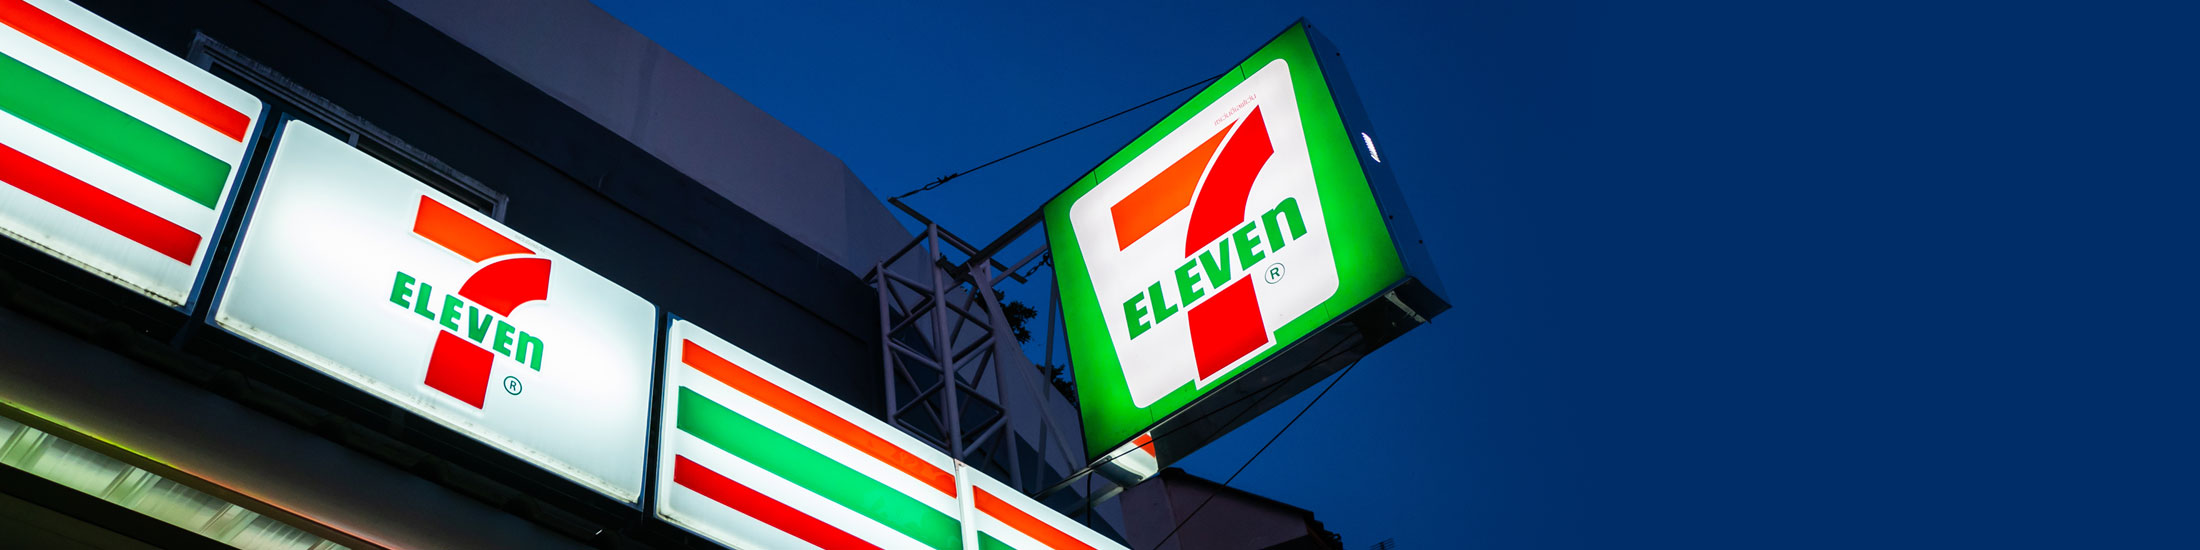 7-Eleven Pilots 'Just-Walk-Out' Stores